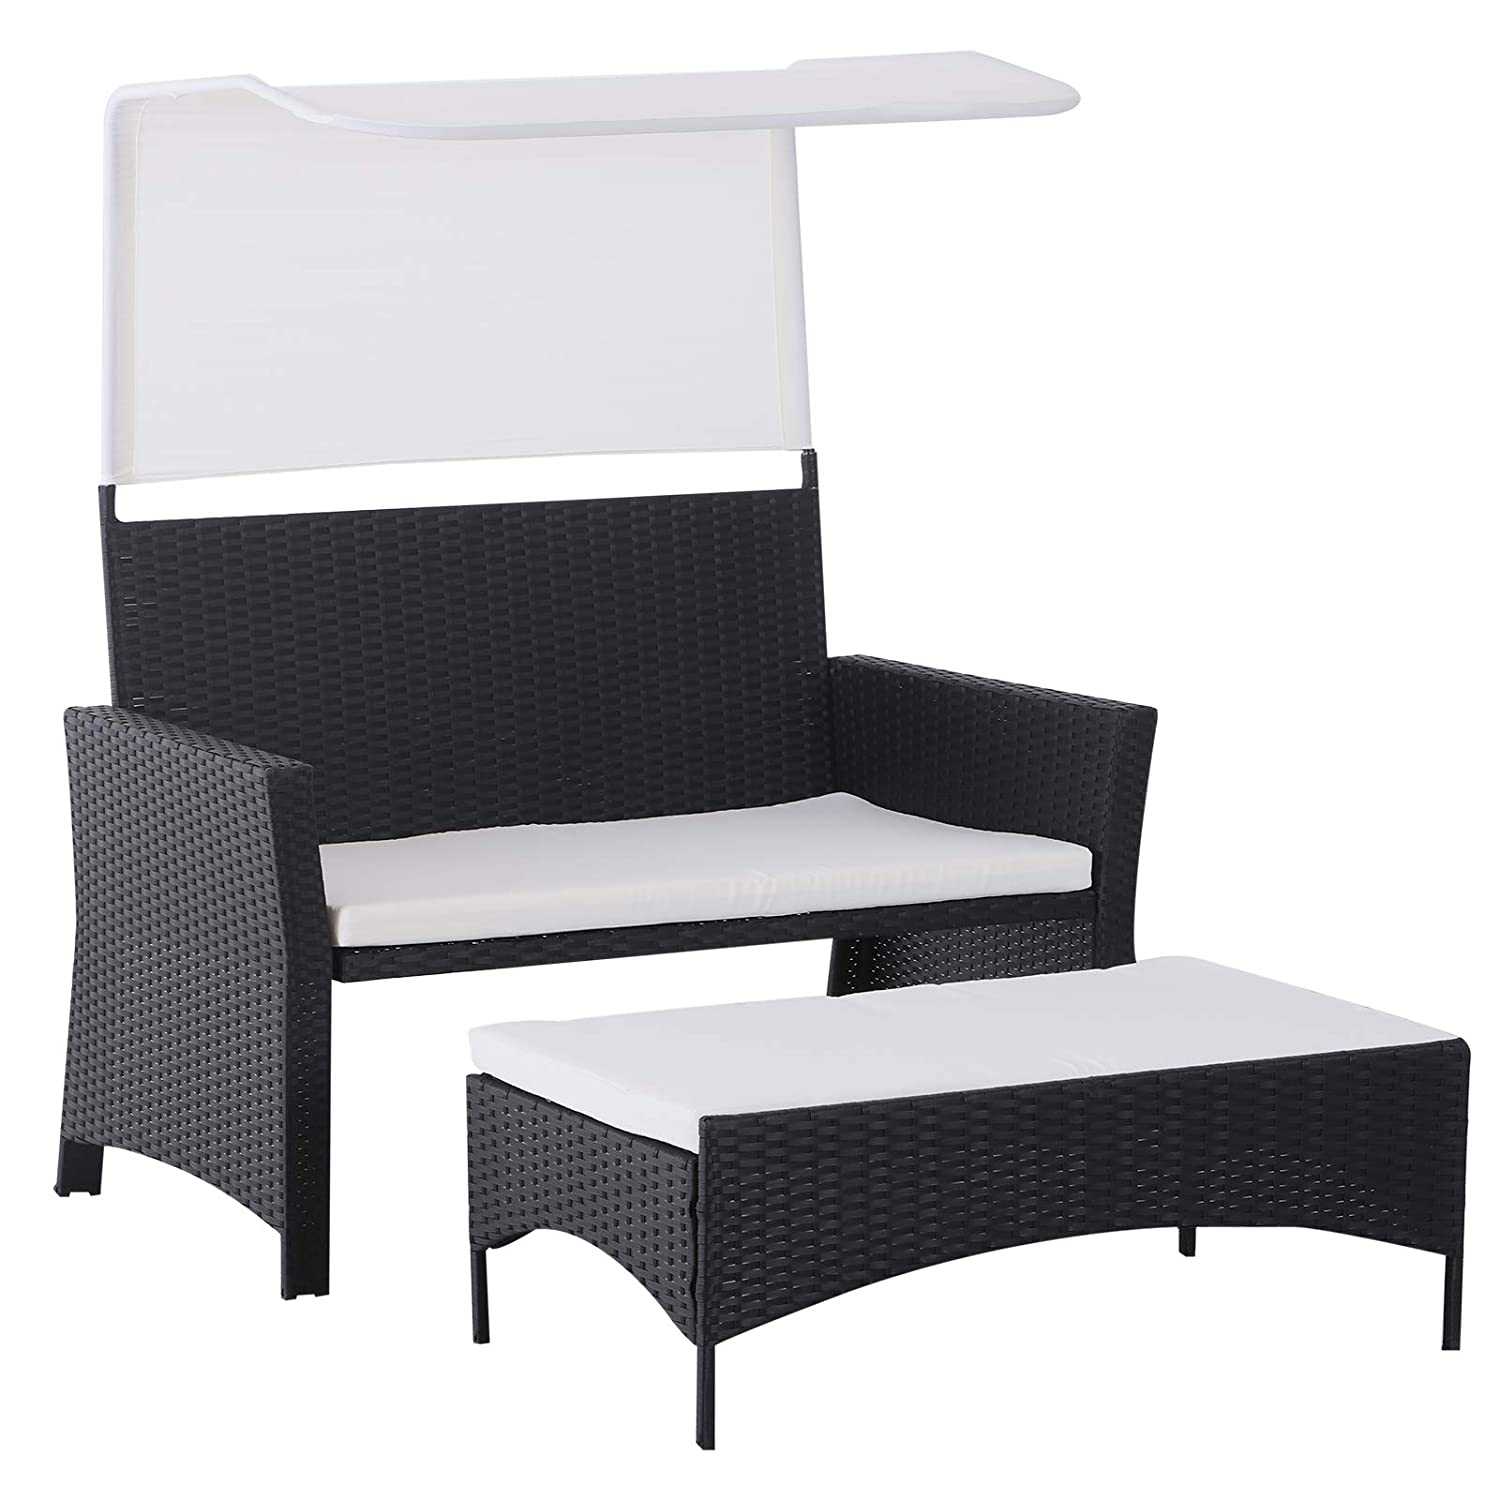 Outsunny 2 Piece Rattan Wicker Outdoor Loveseat with Sunshade Canopy and Nesting Ottoman Footrest Black